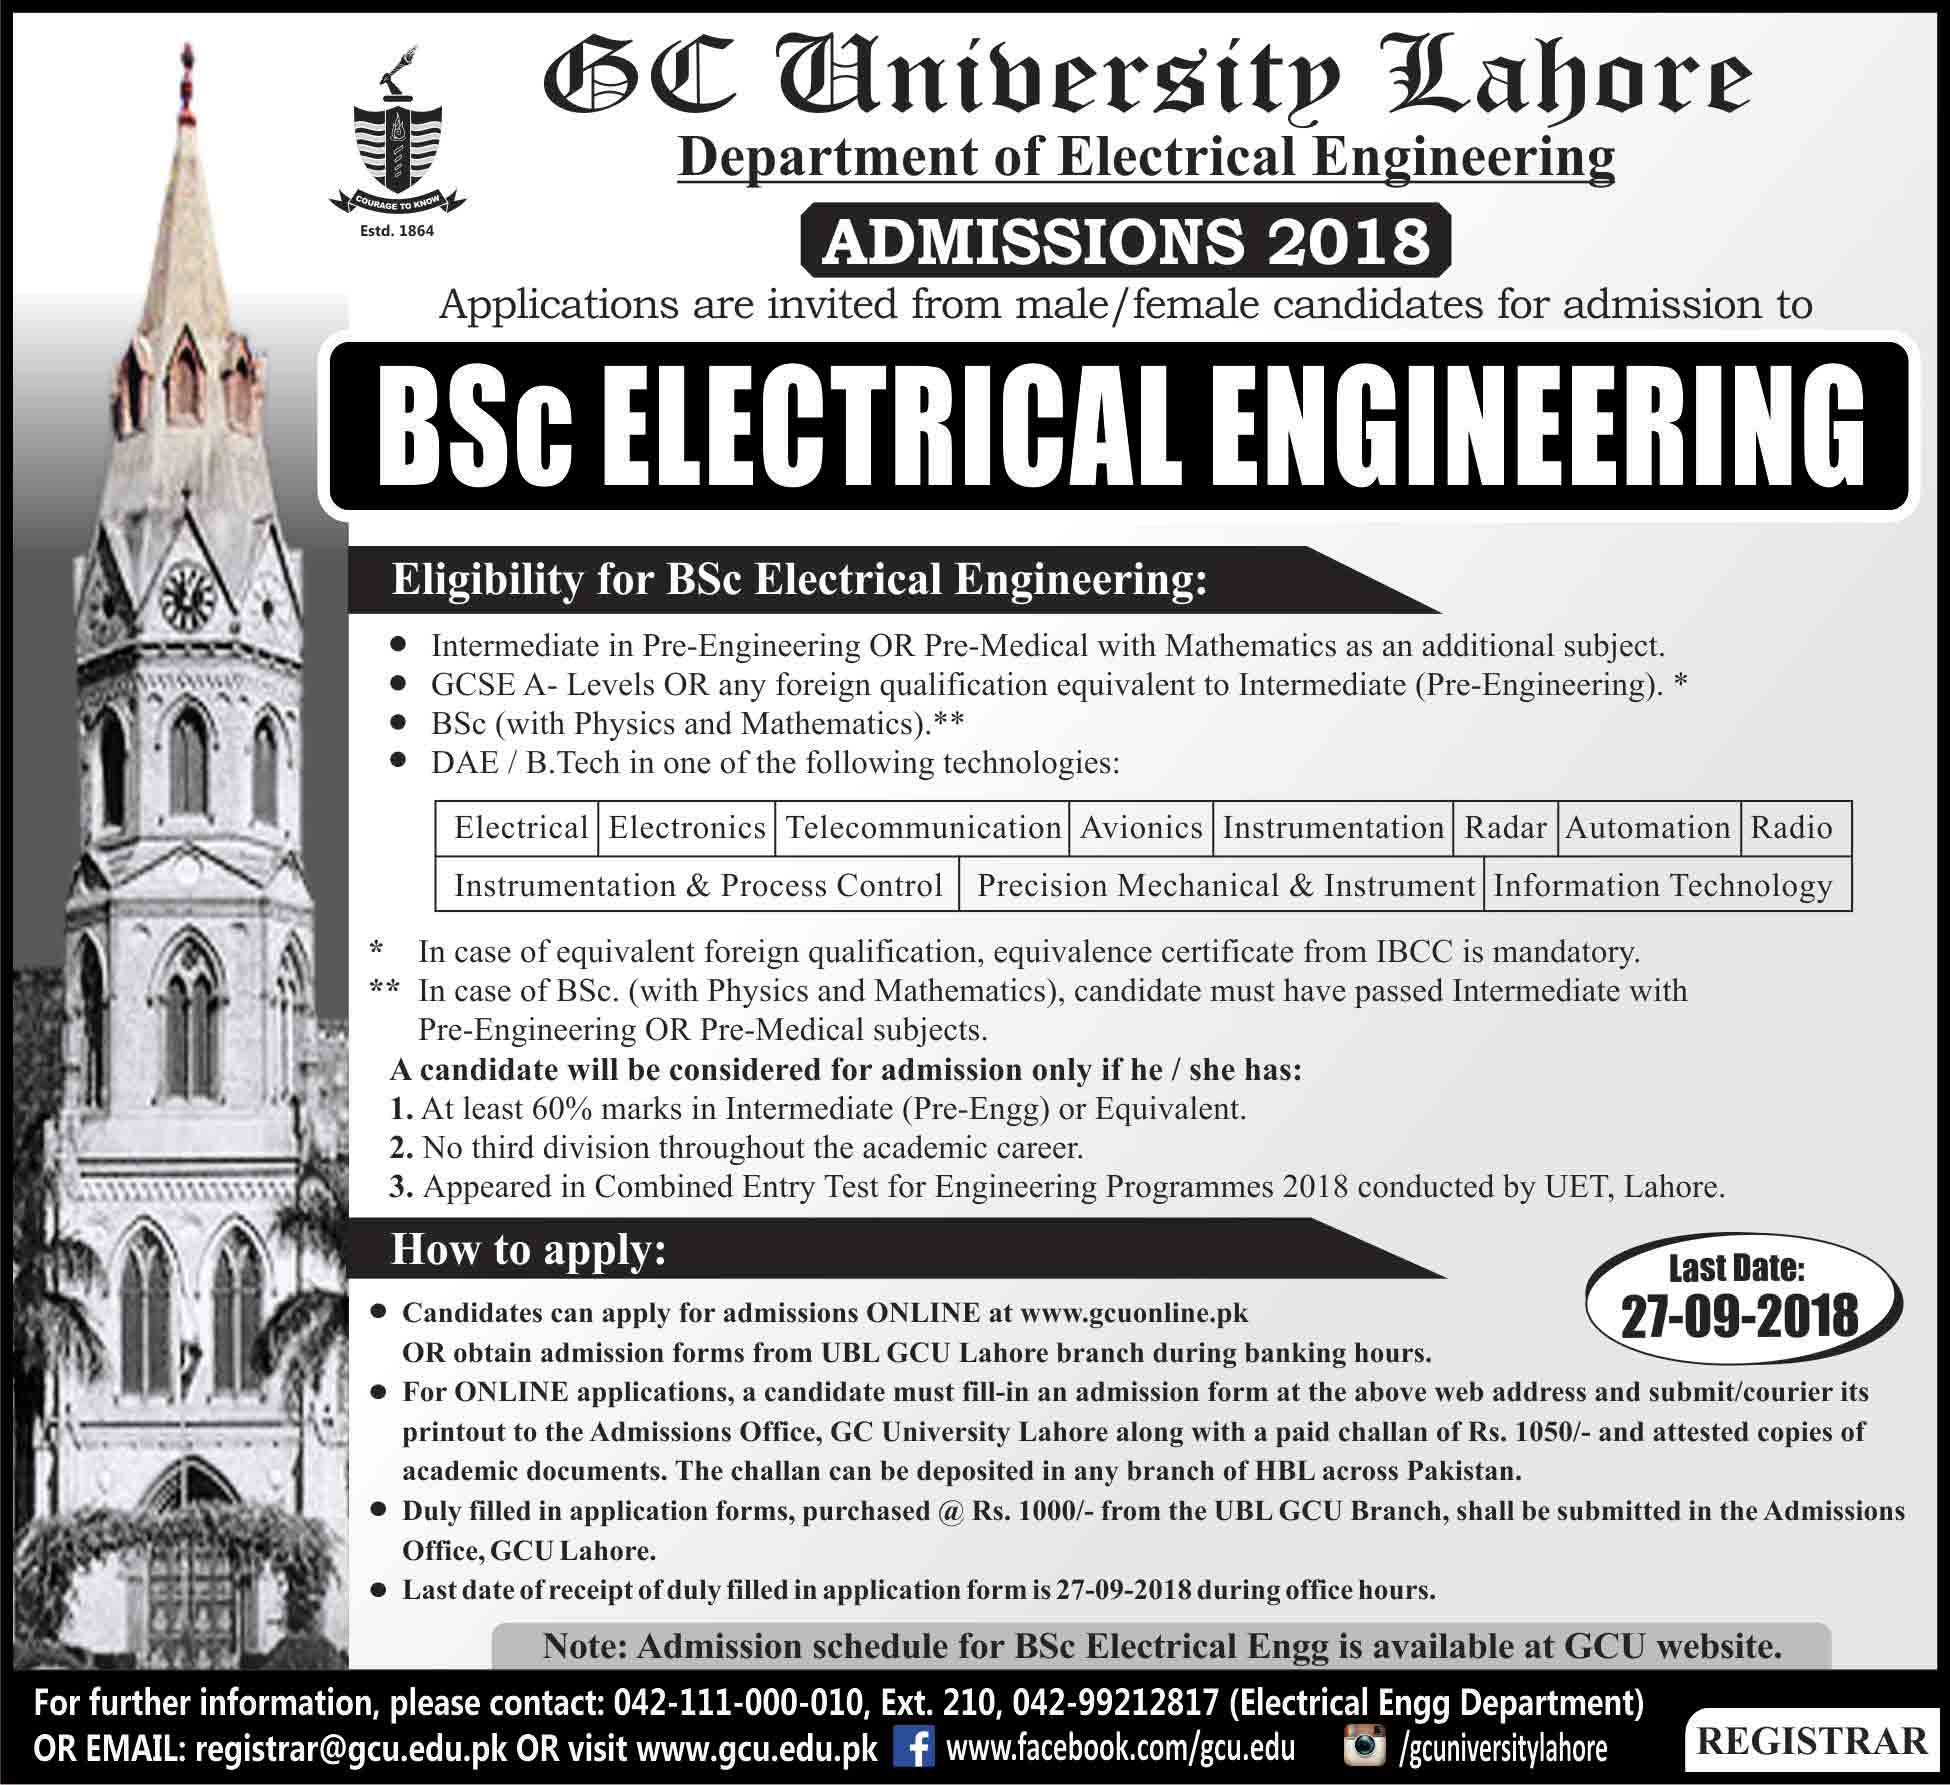 GC University Lahore (BSc Electrical Engineering) Admissions 2018